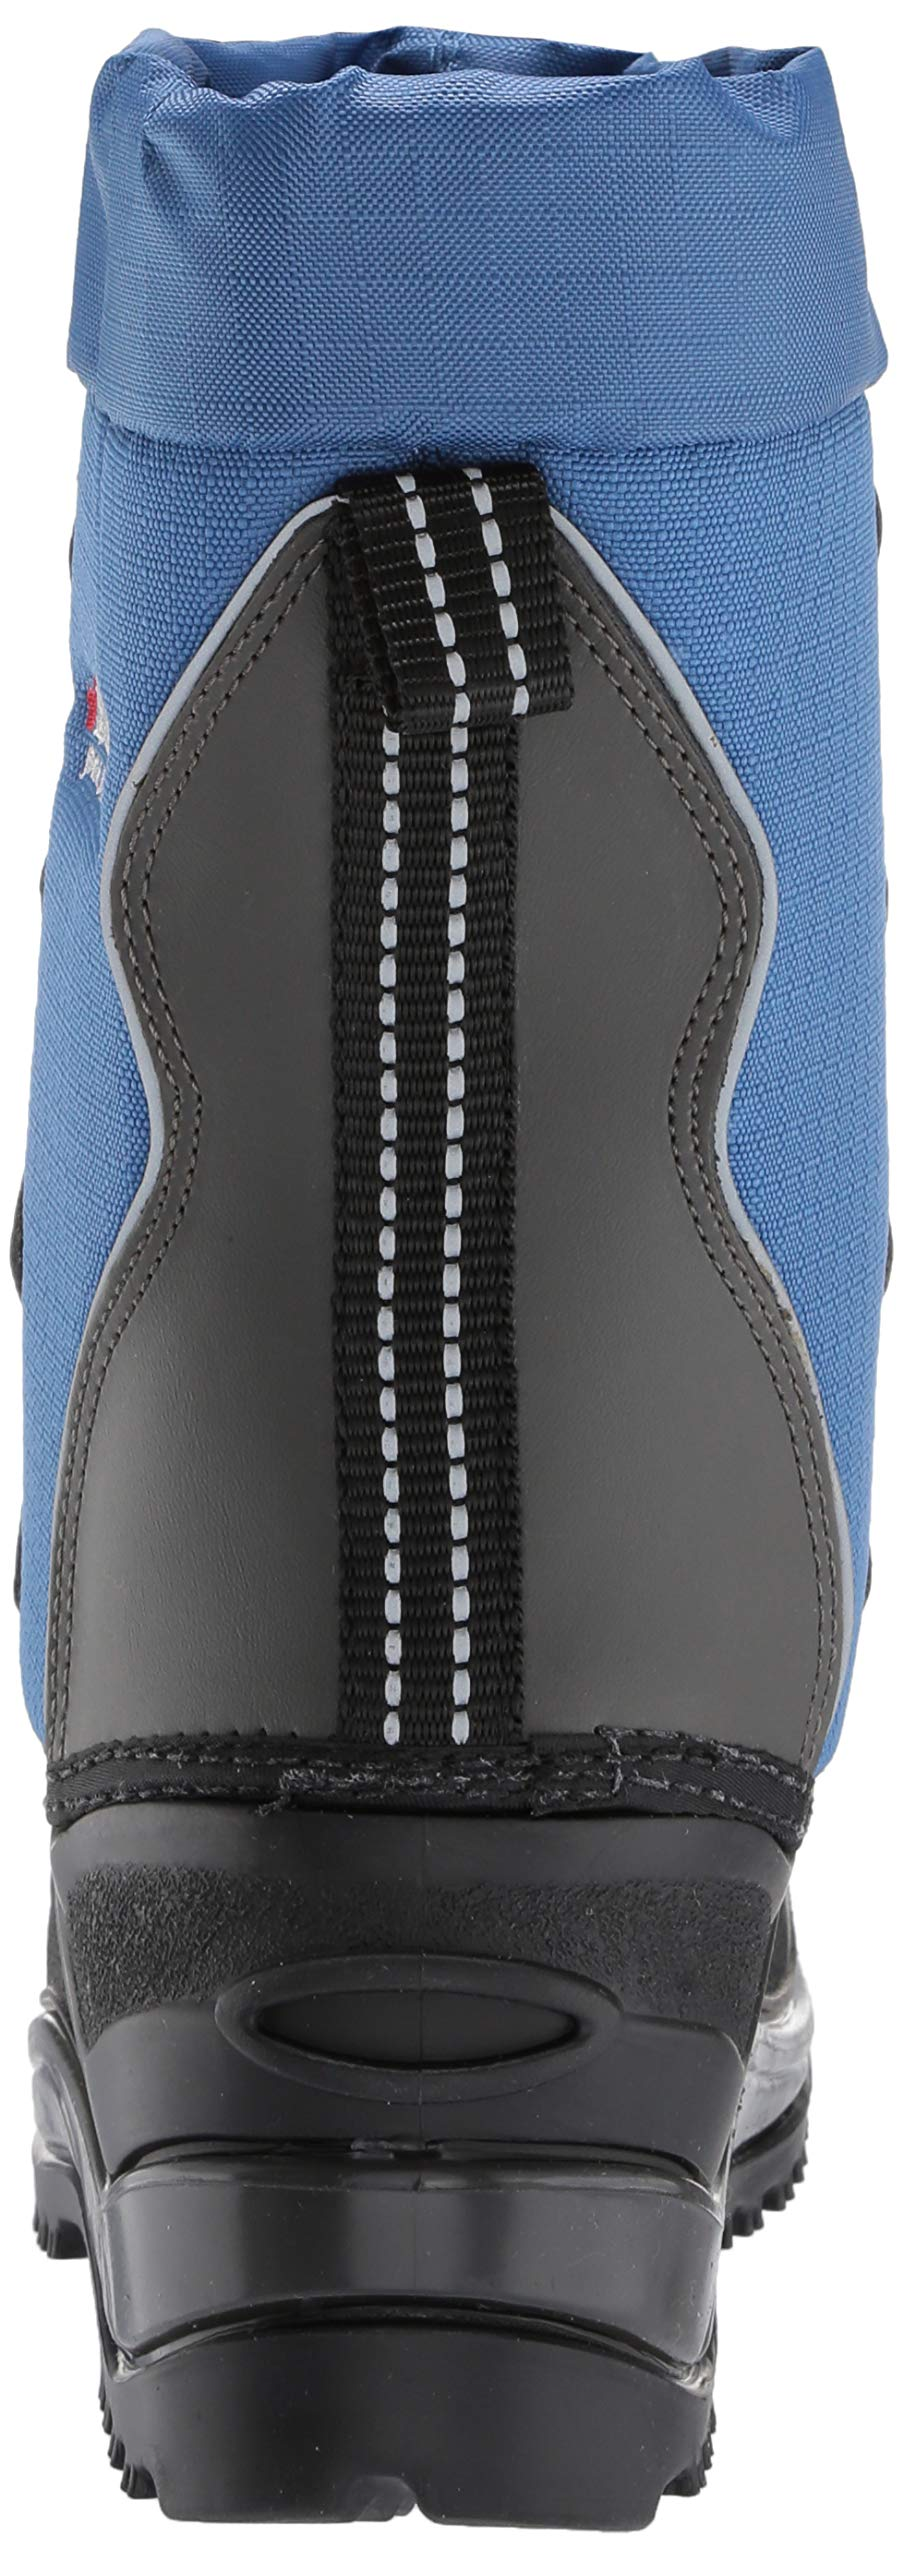 Baffin Unisex SNOWPACK Snow Boot, Blue, 2 Youth US Little Kid by Baffin (Image #2)